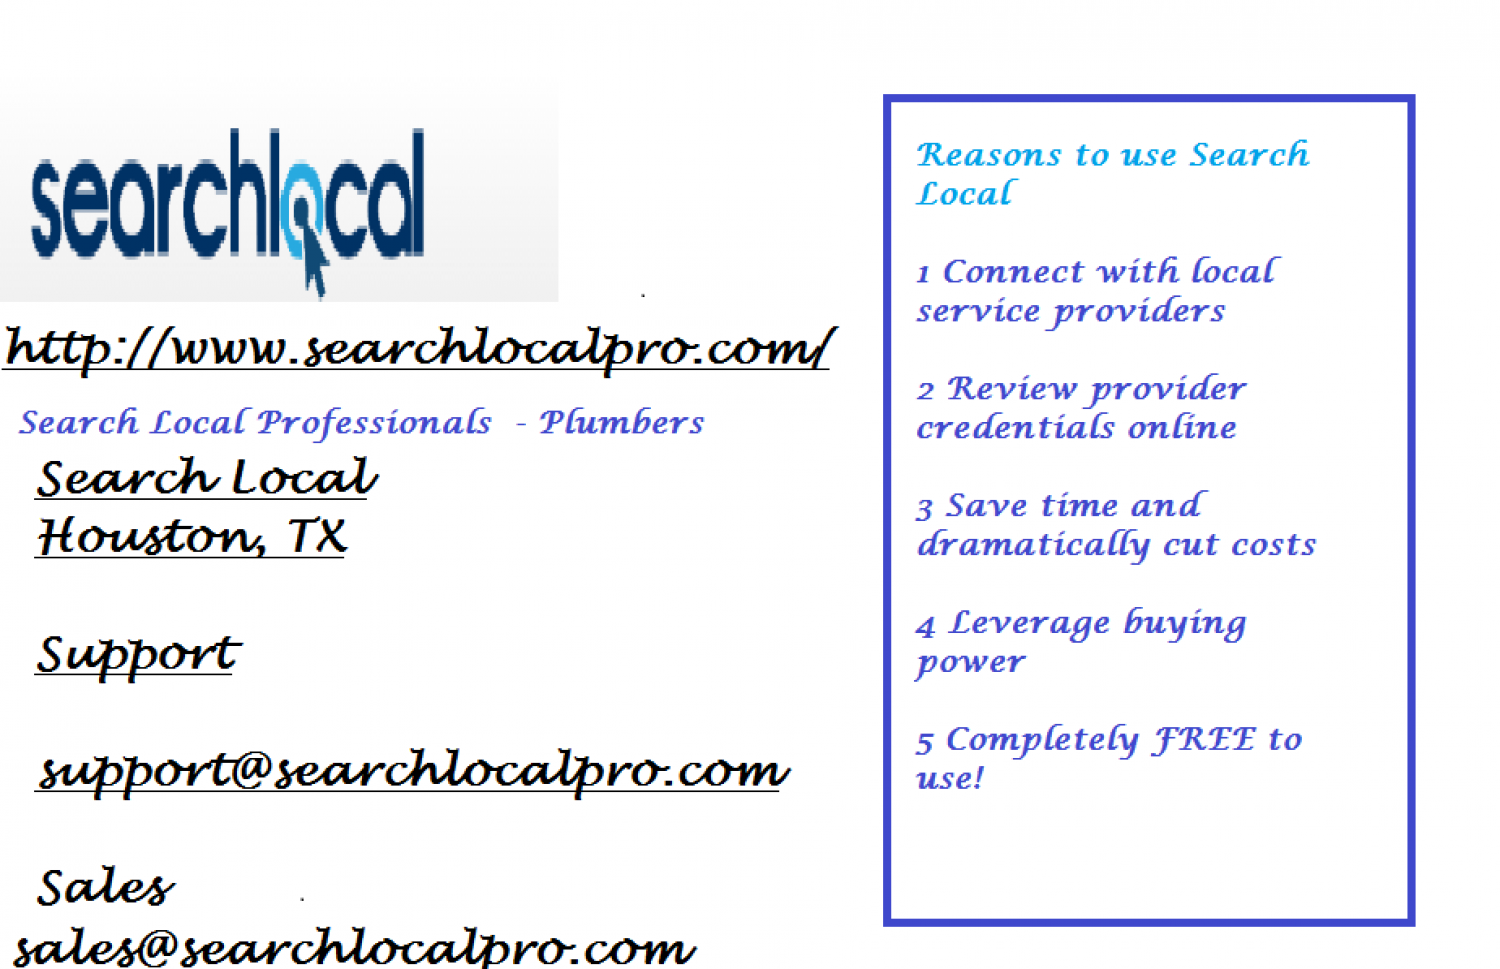 Search Local Professionals  - www.searchlocalpro.com Infographic